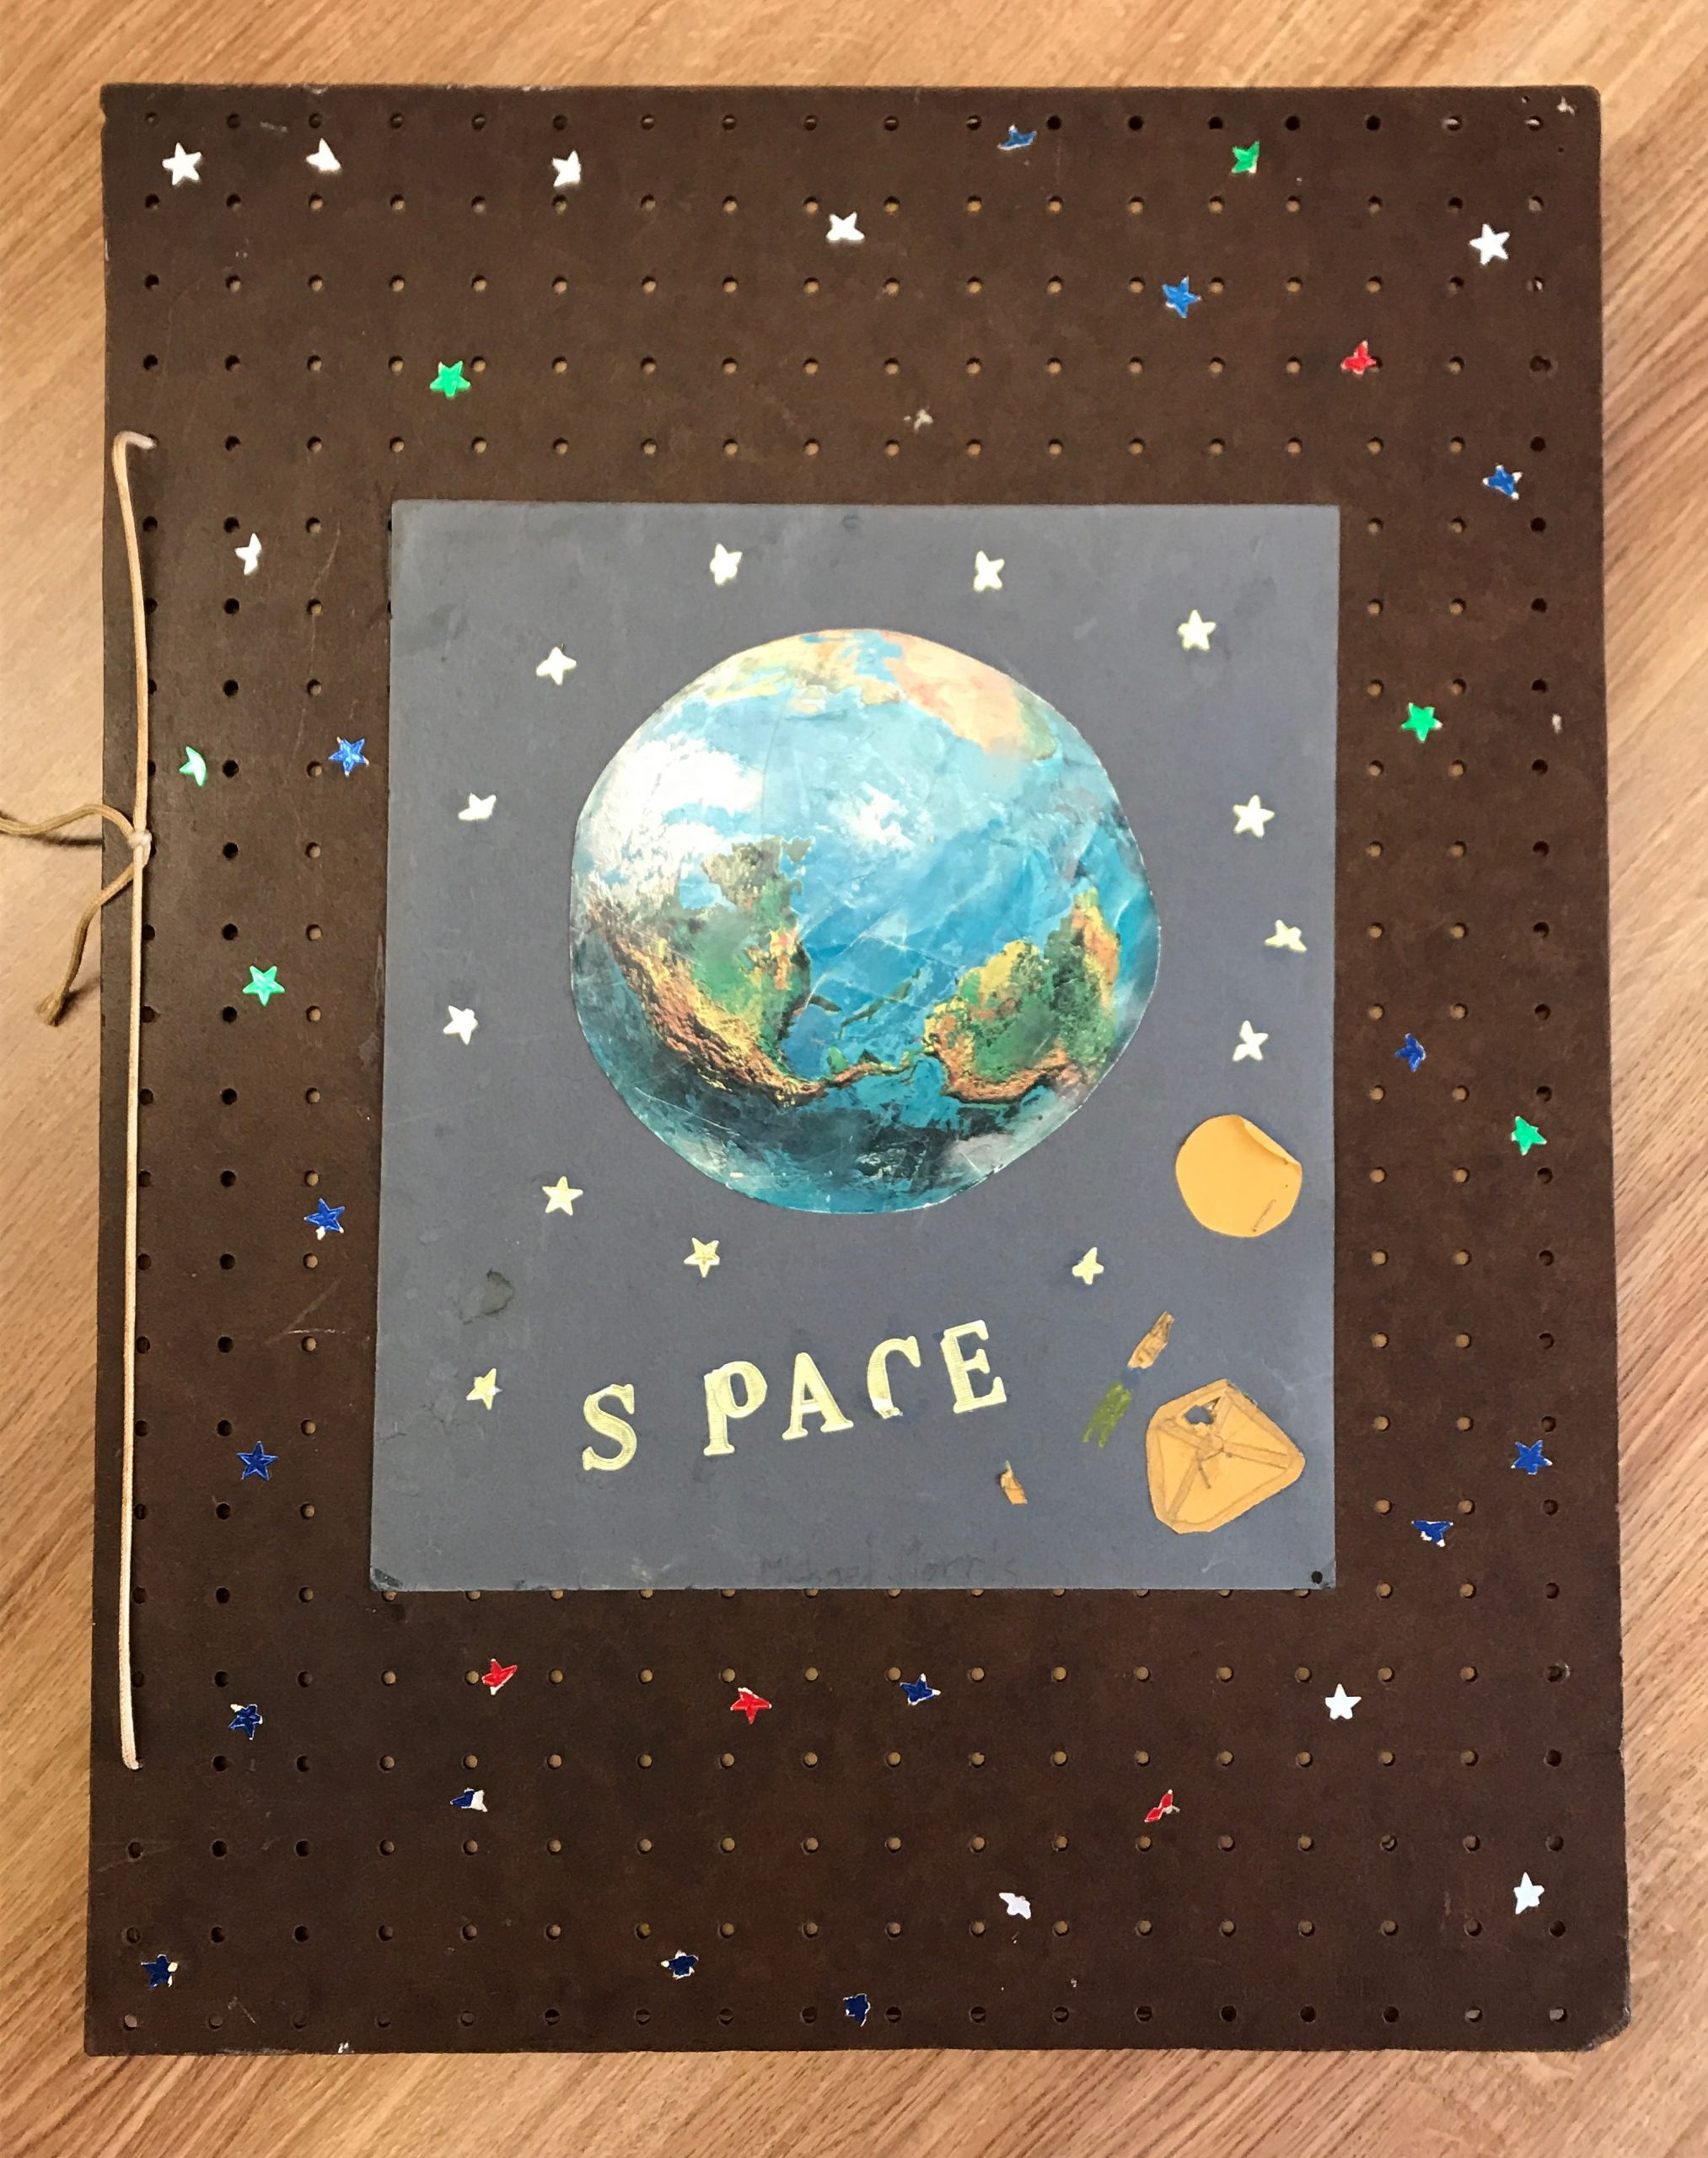 Scrap Book That Shows Earth From Space Surrounded By Stars